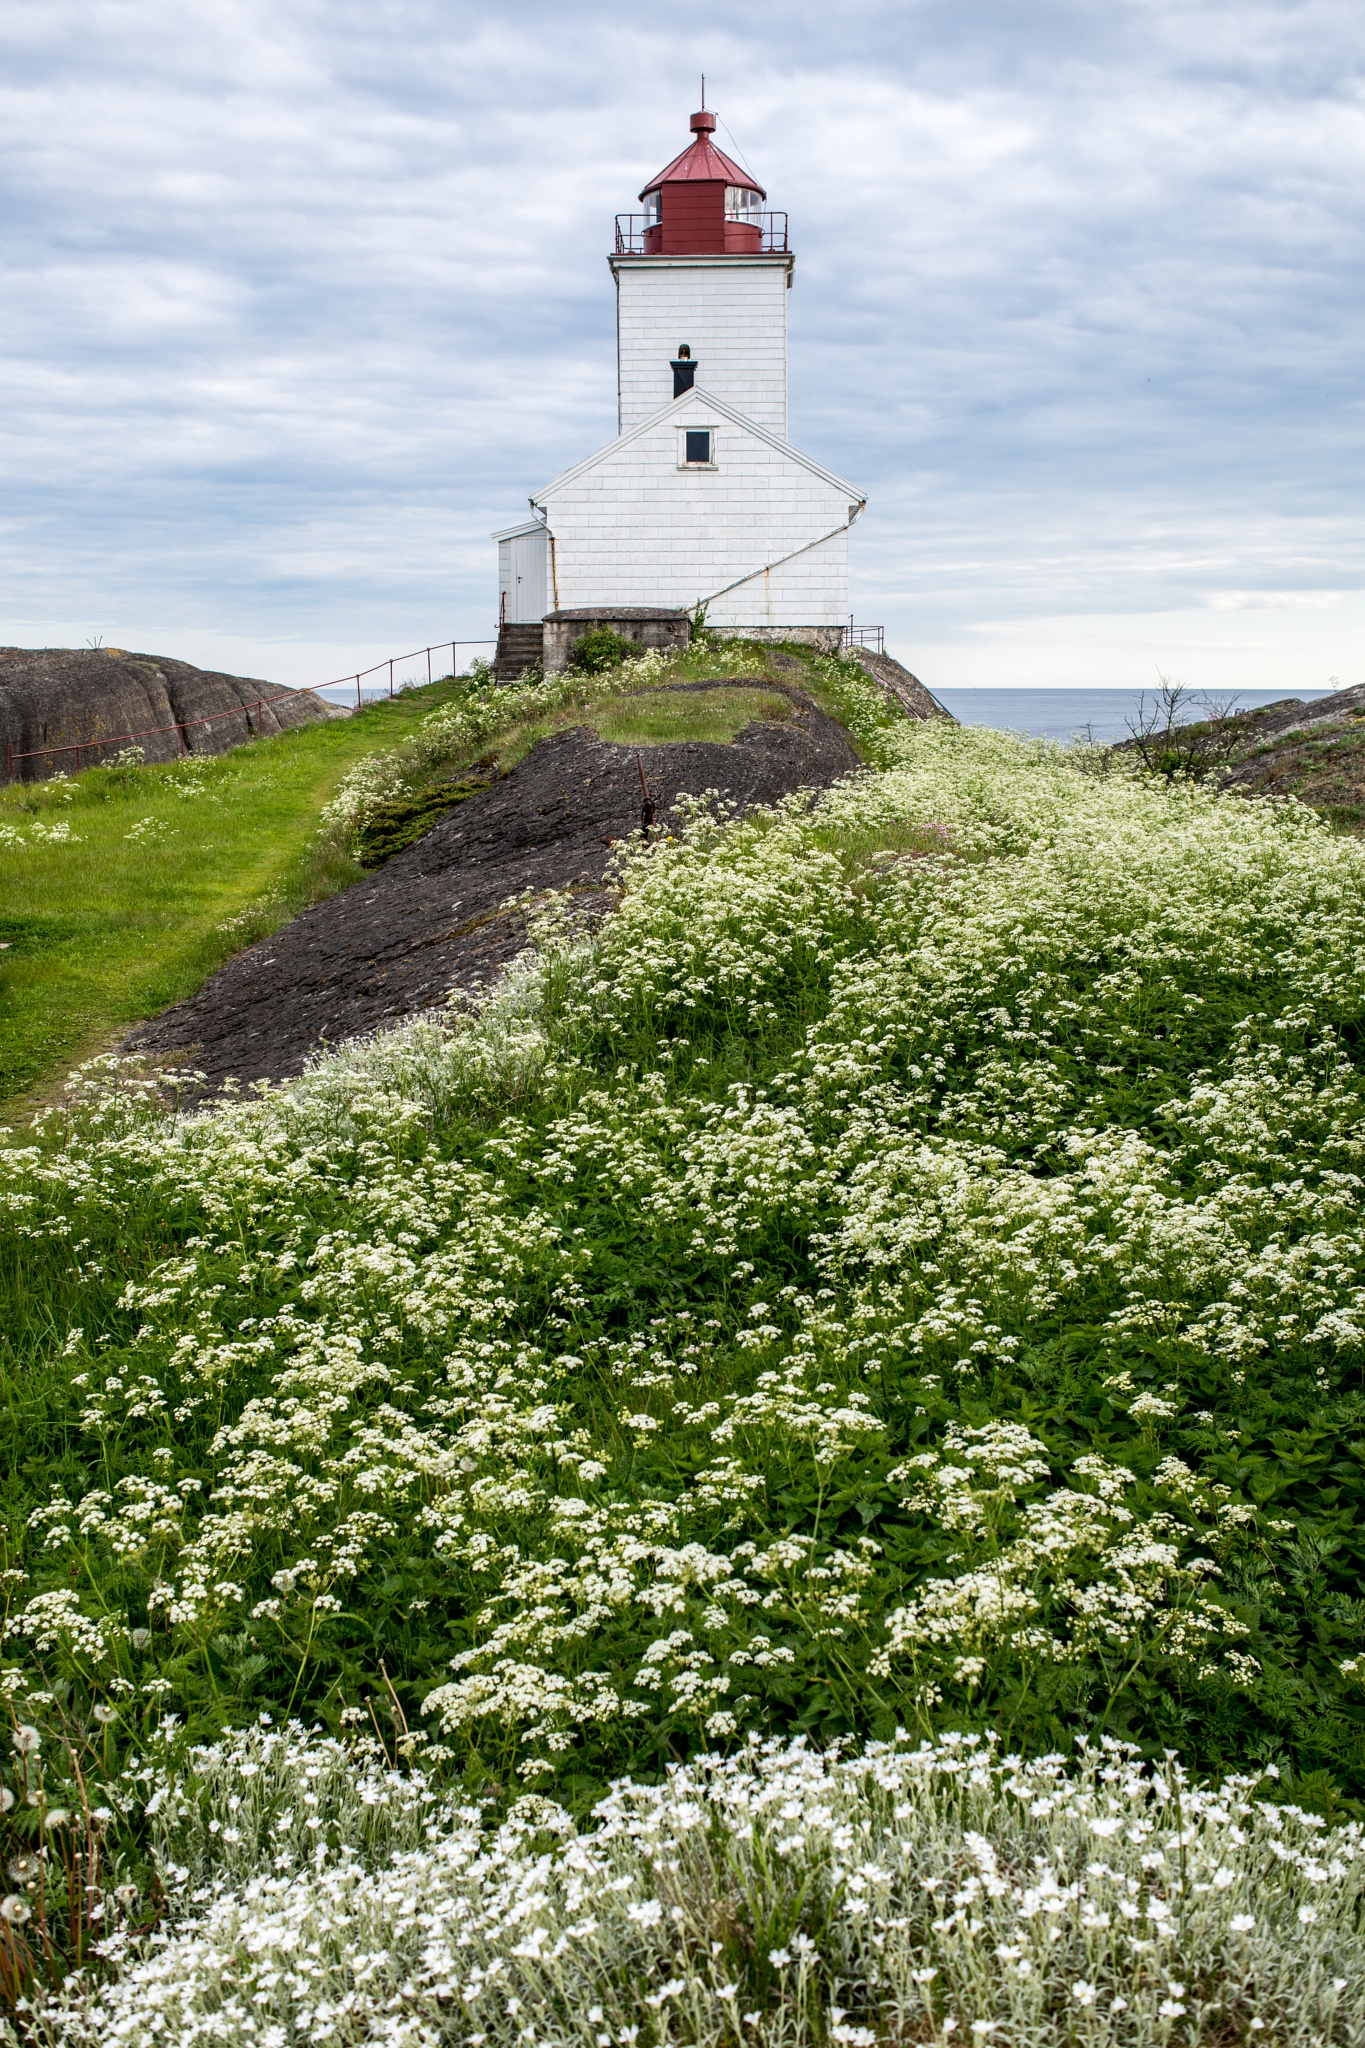 The Lighthouse and summer by Ole Morten Eyra